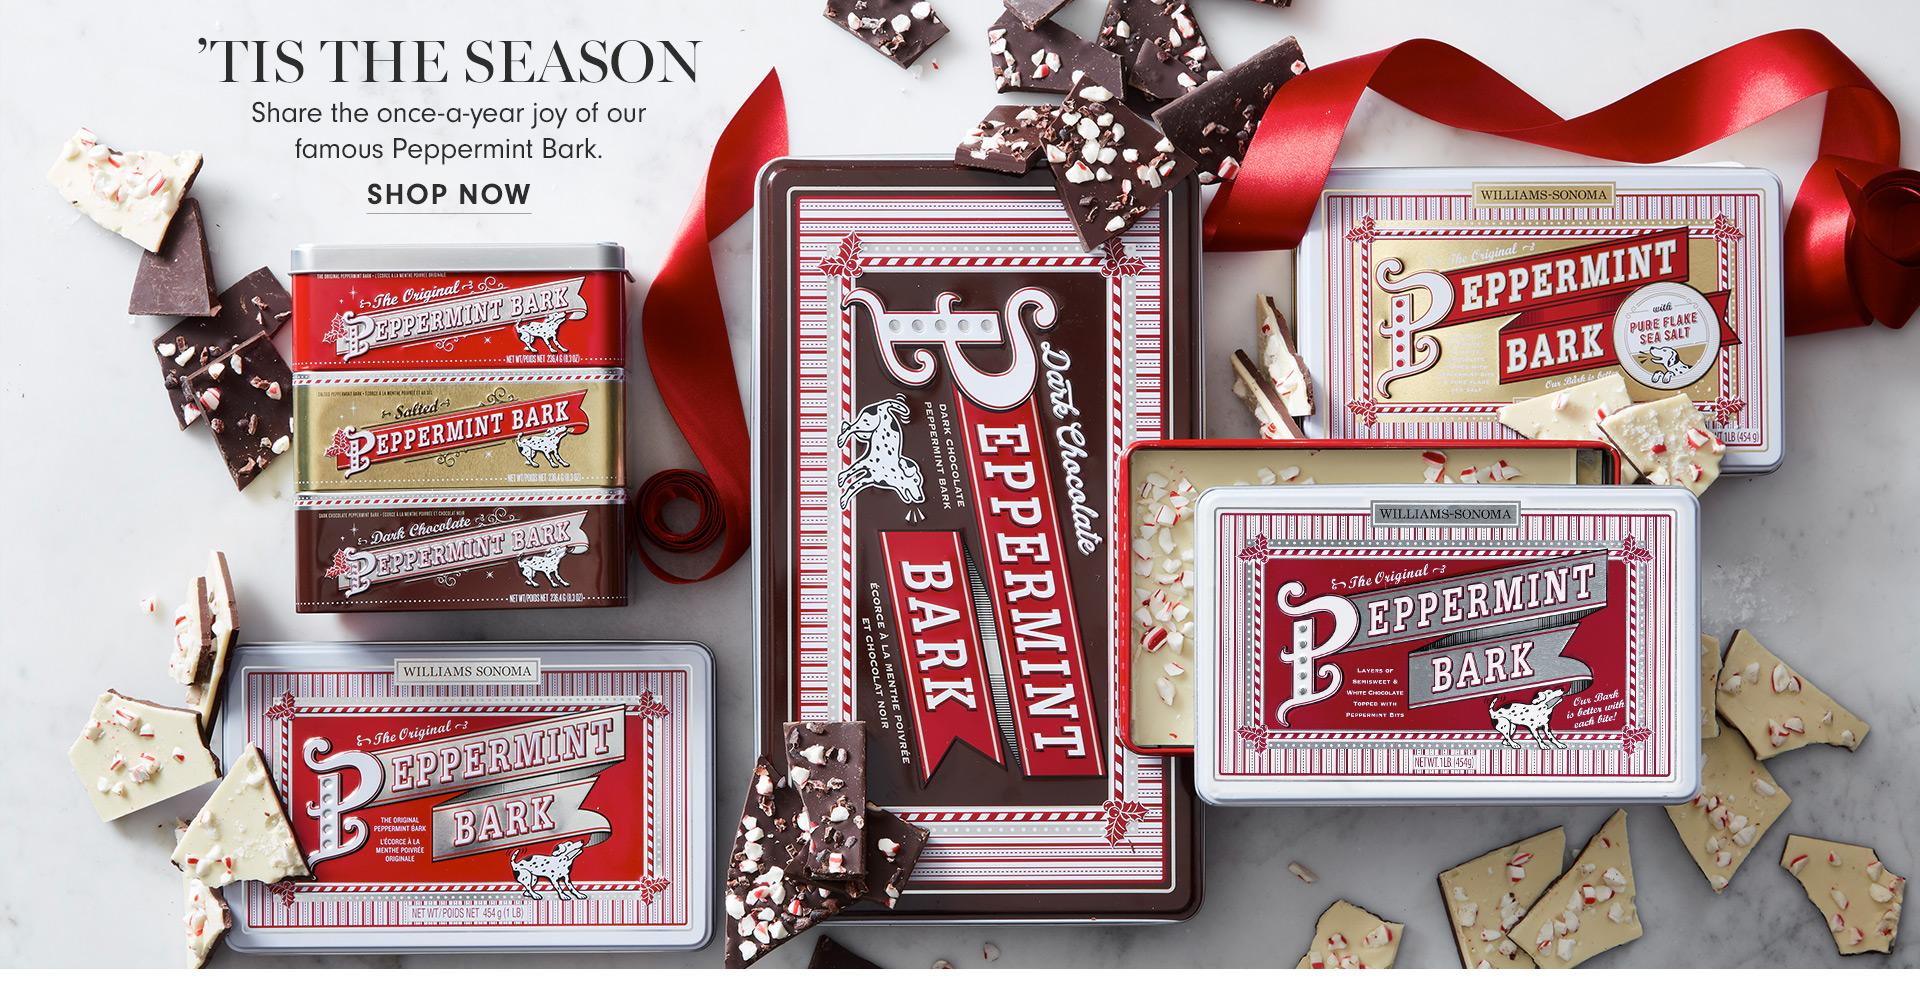 'Tis the Season | Share the once-a-year joy of our famous Peppermint Bark. | Shop Now